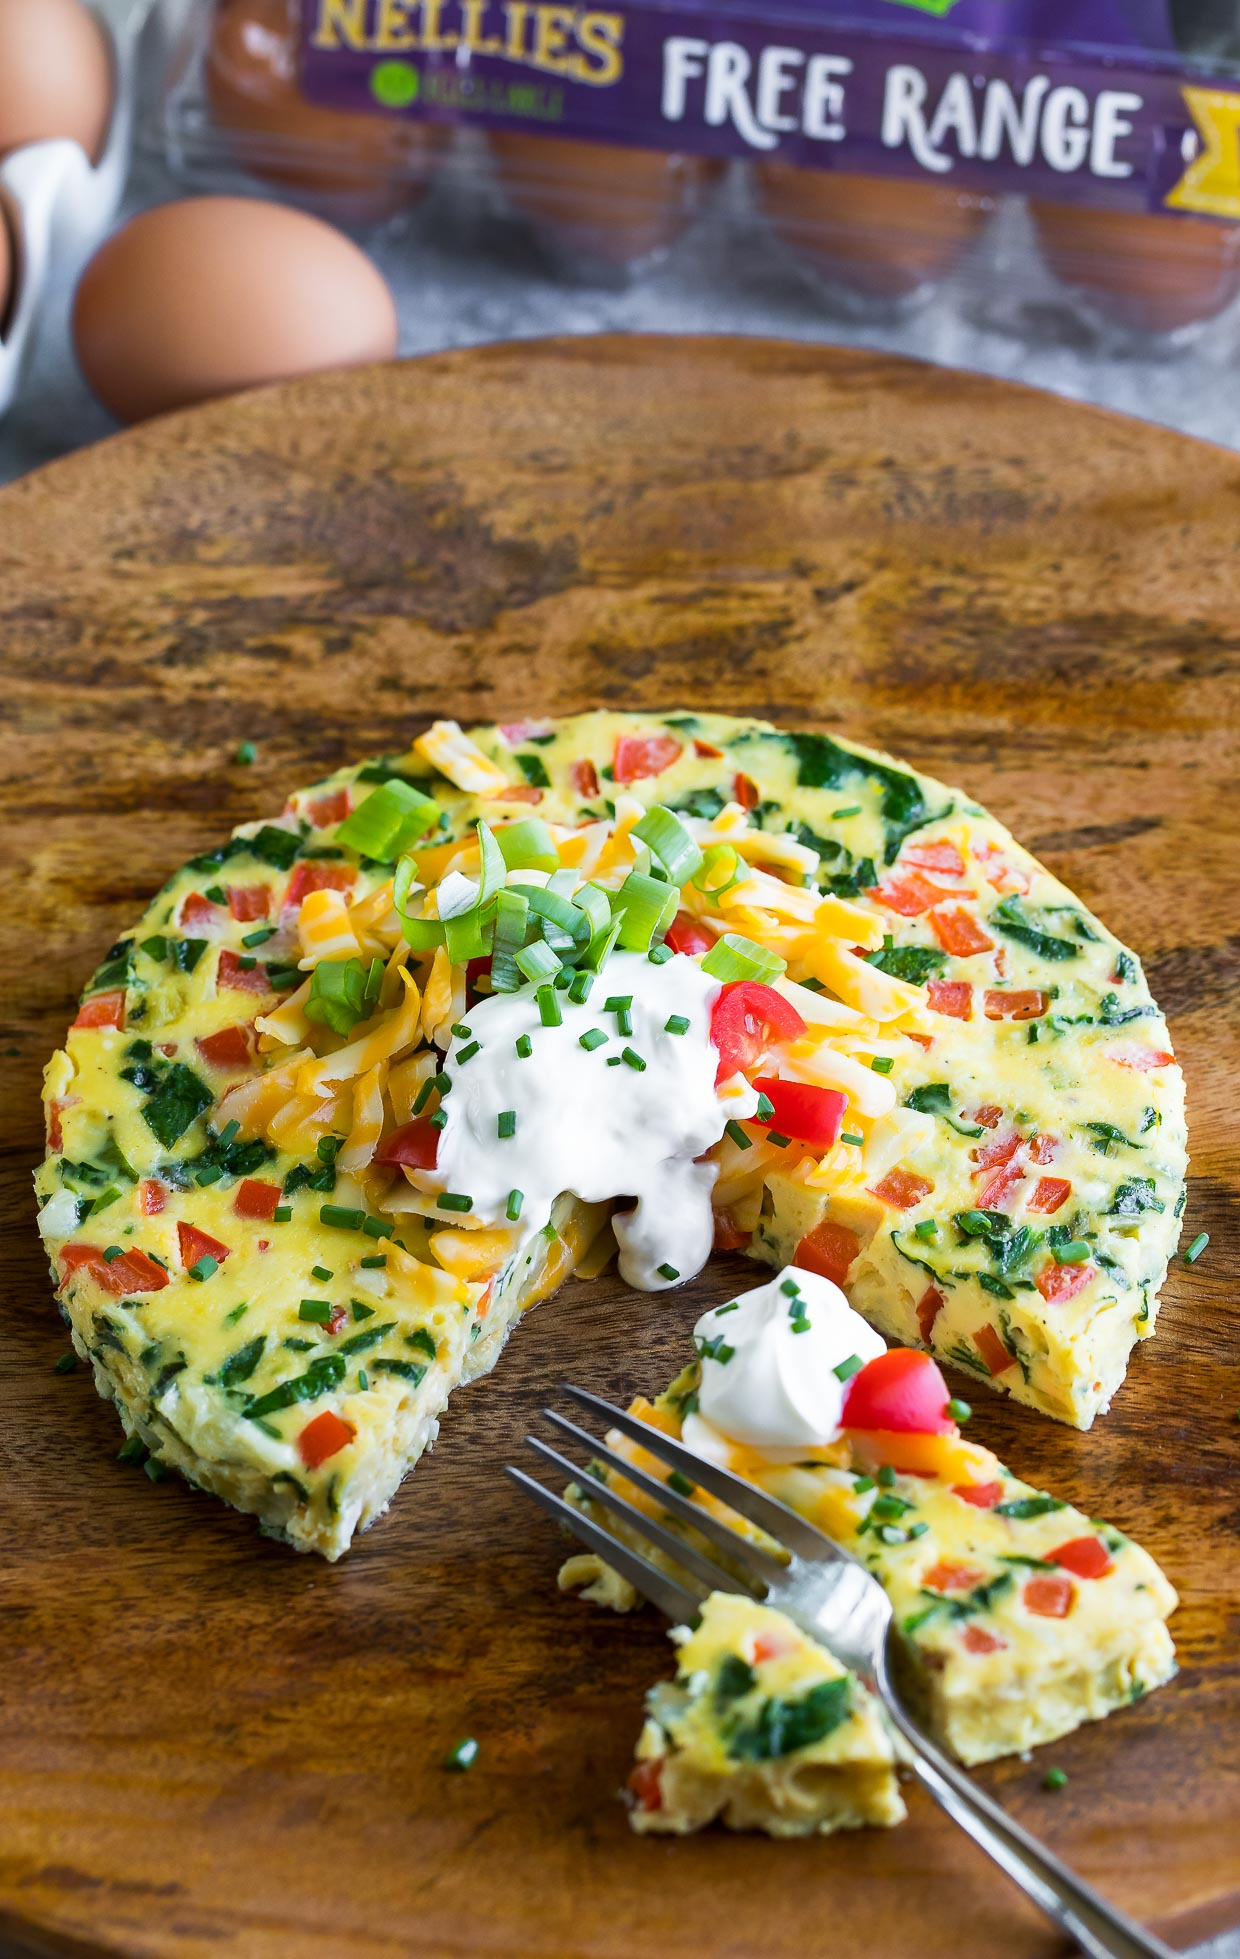 Instant Pot Frittata Breakfast Casserole action shot with Nellie's Free Range Eggs